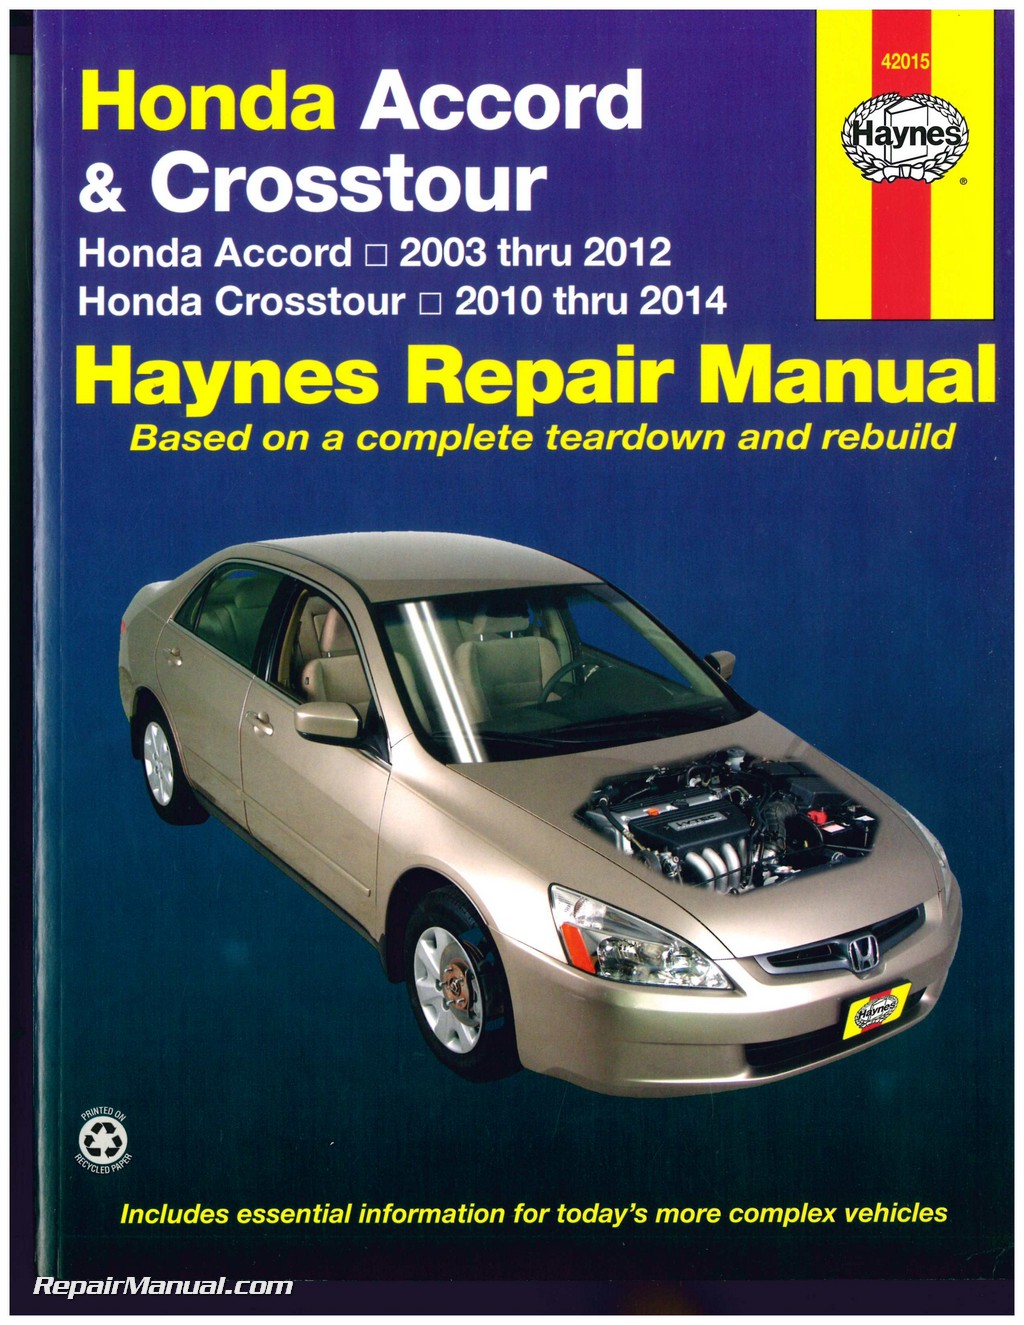 honda accord 2003 2012 crosstour 2010 2014 haynes automotive service rh repairmanual com 2013 honda accord service manual forum pdf 2013 honda accord service manual forum